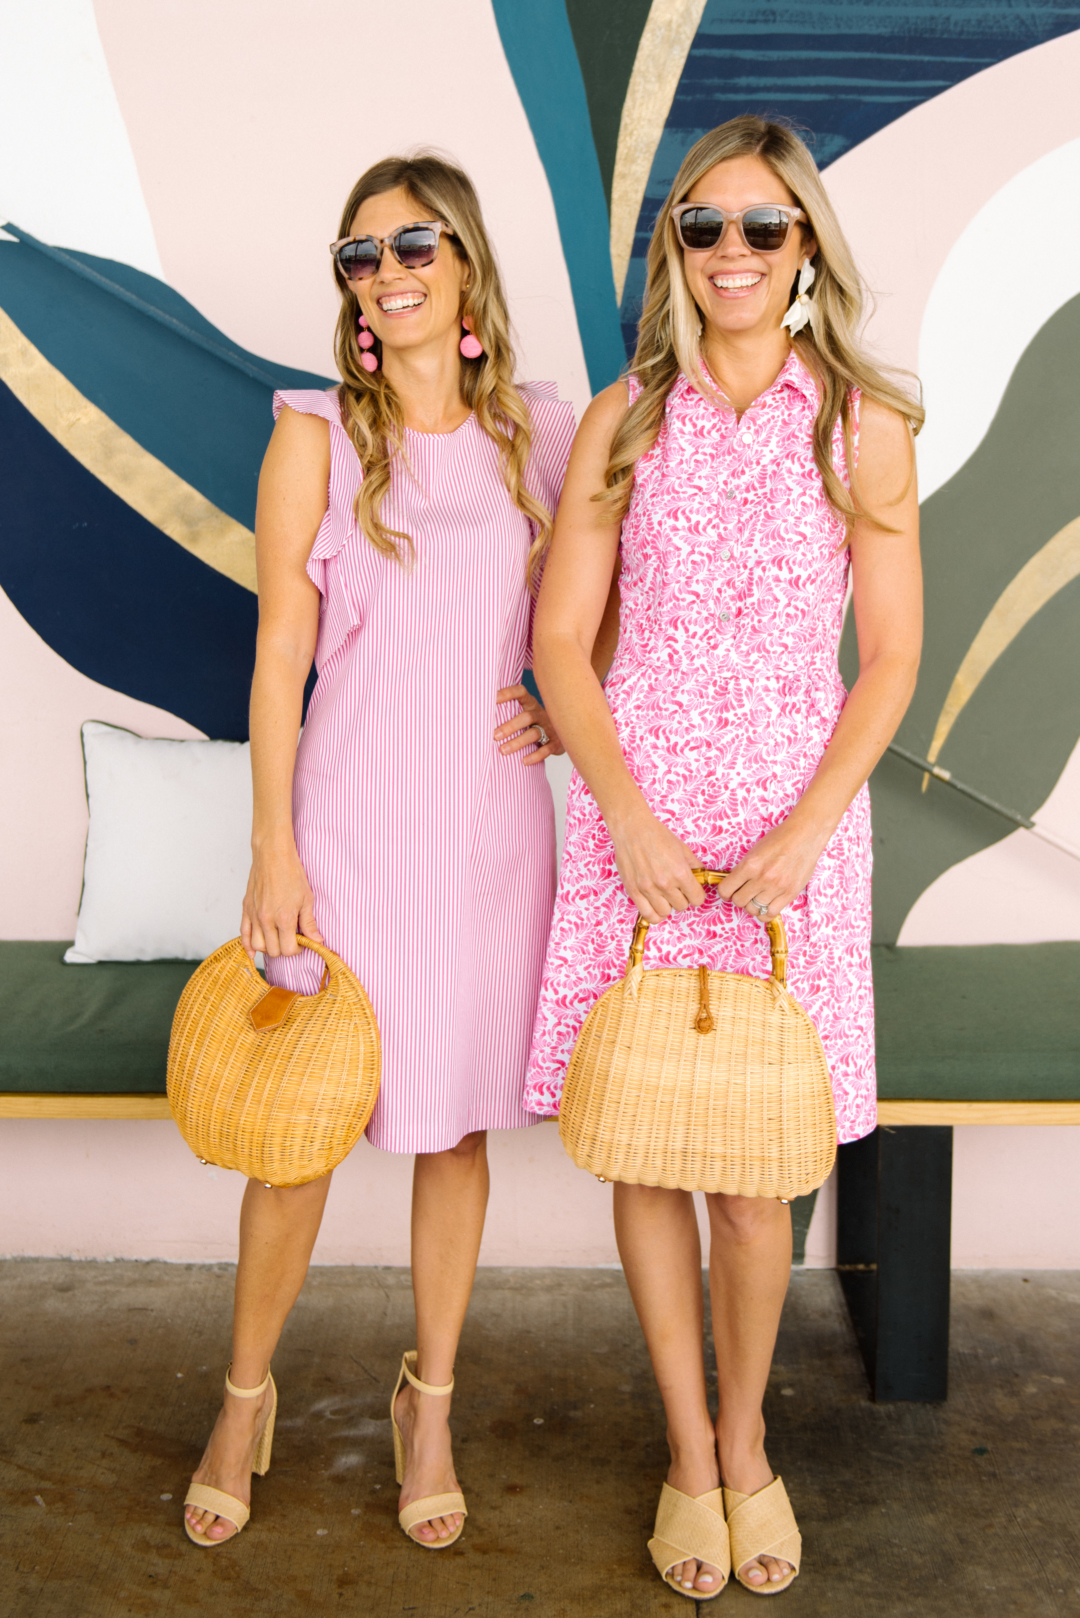 Fashion: Pink Dresses by J.McLaughlin with Palm Beach Lately